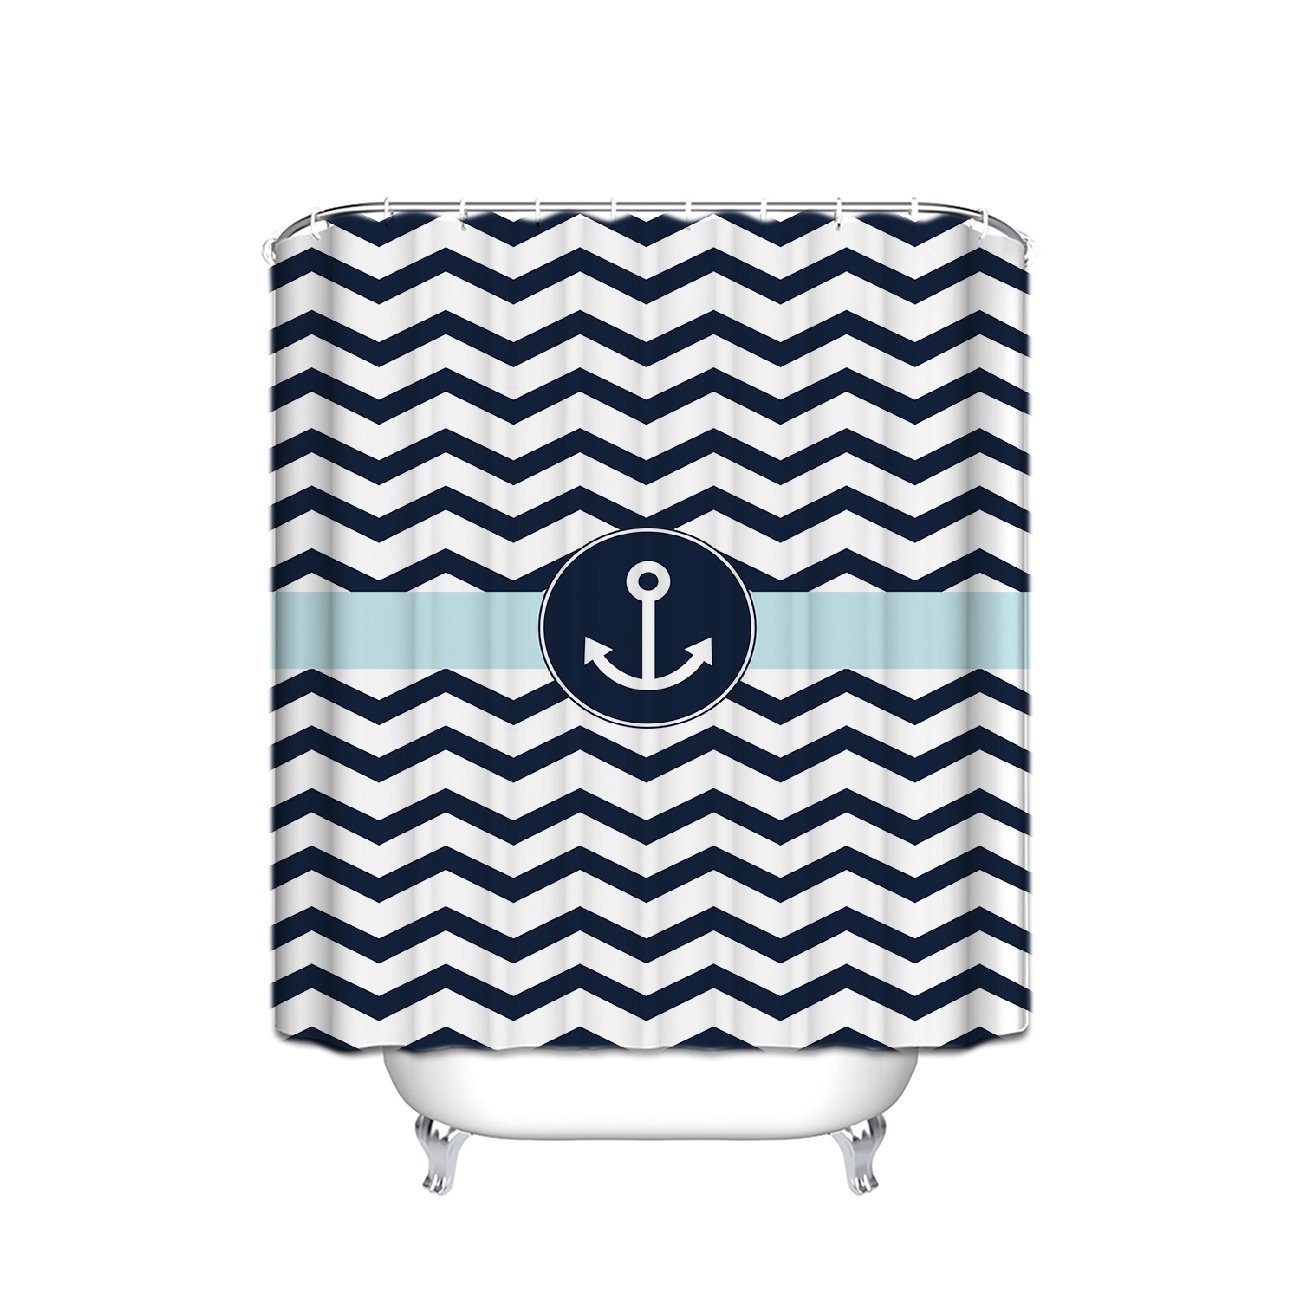 Navy blue patterned curtains - Custom Navy Blue And White Chevron With Nautical Anchor Pattern Bathroom Shower Curtain 60x 72in For Bathroom